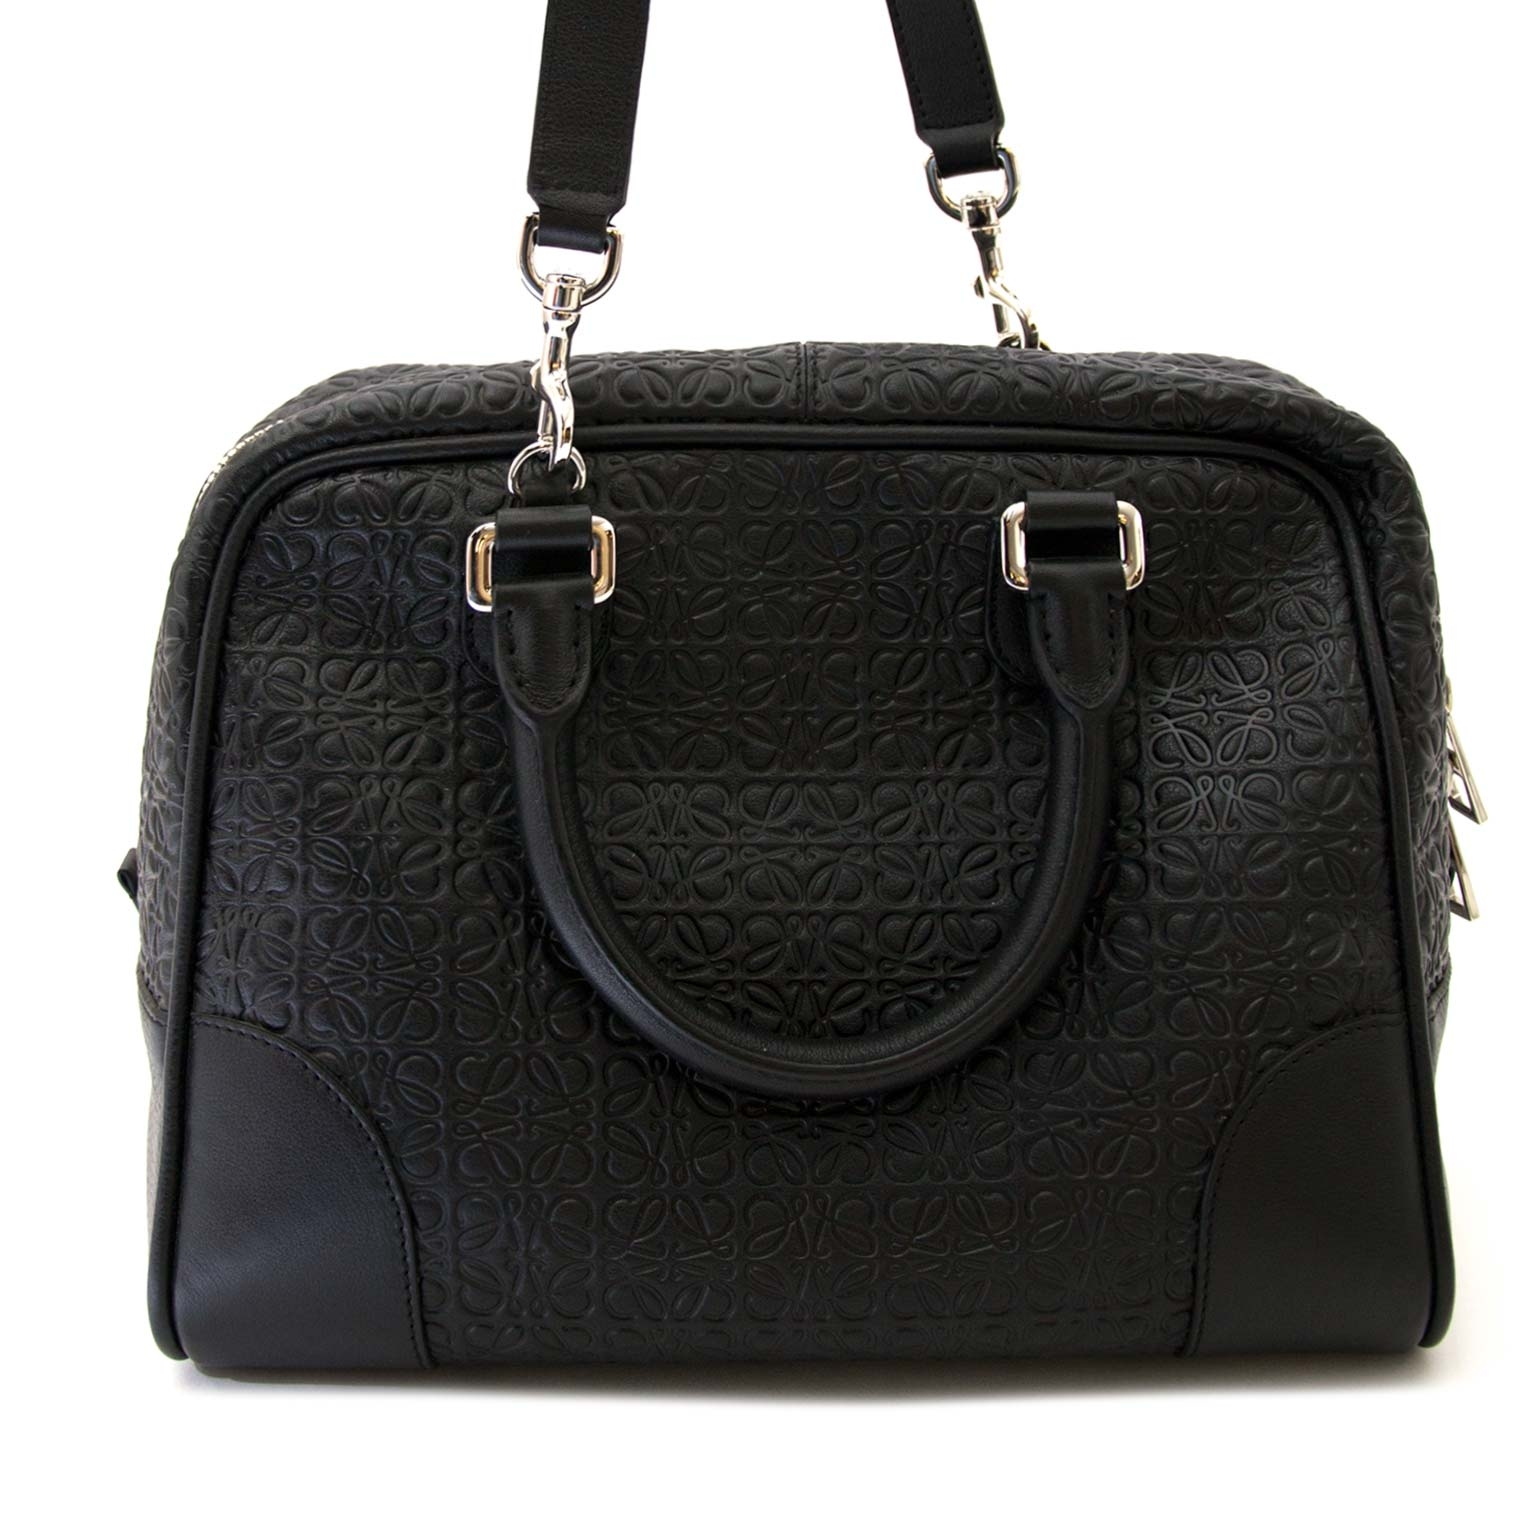 buy Loewe Black Bolso Amazona Medium Anagram Bag at labellov for the best price